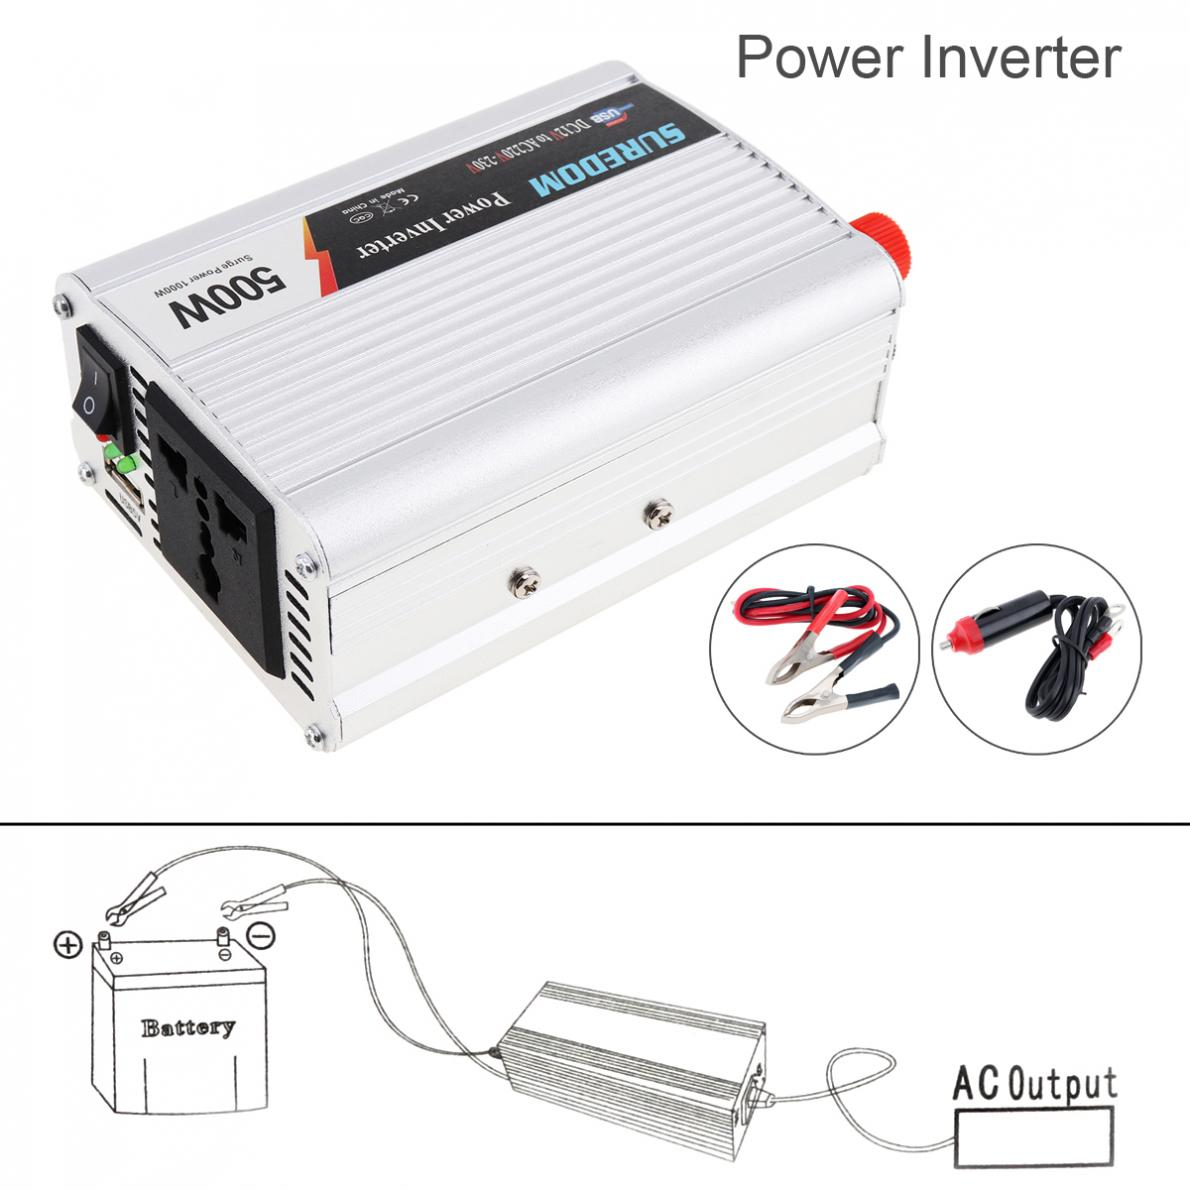 500W DC <font><b>12V</b></font> 24V to AC 220V 110V Vehicle Car Power <font><b>Inverter</b></font> USB Adapter Portable Voltage Transformer Charger Surge Power <font><b>1000W</b></font> image